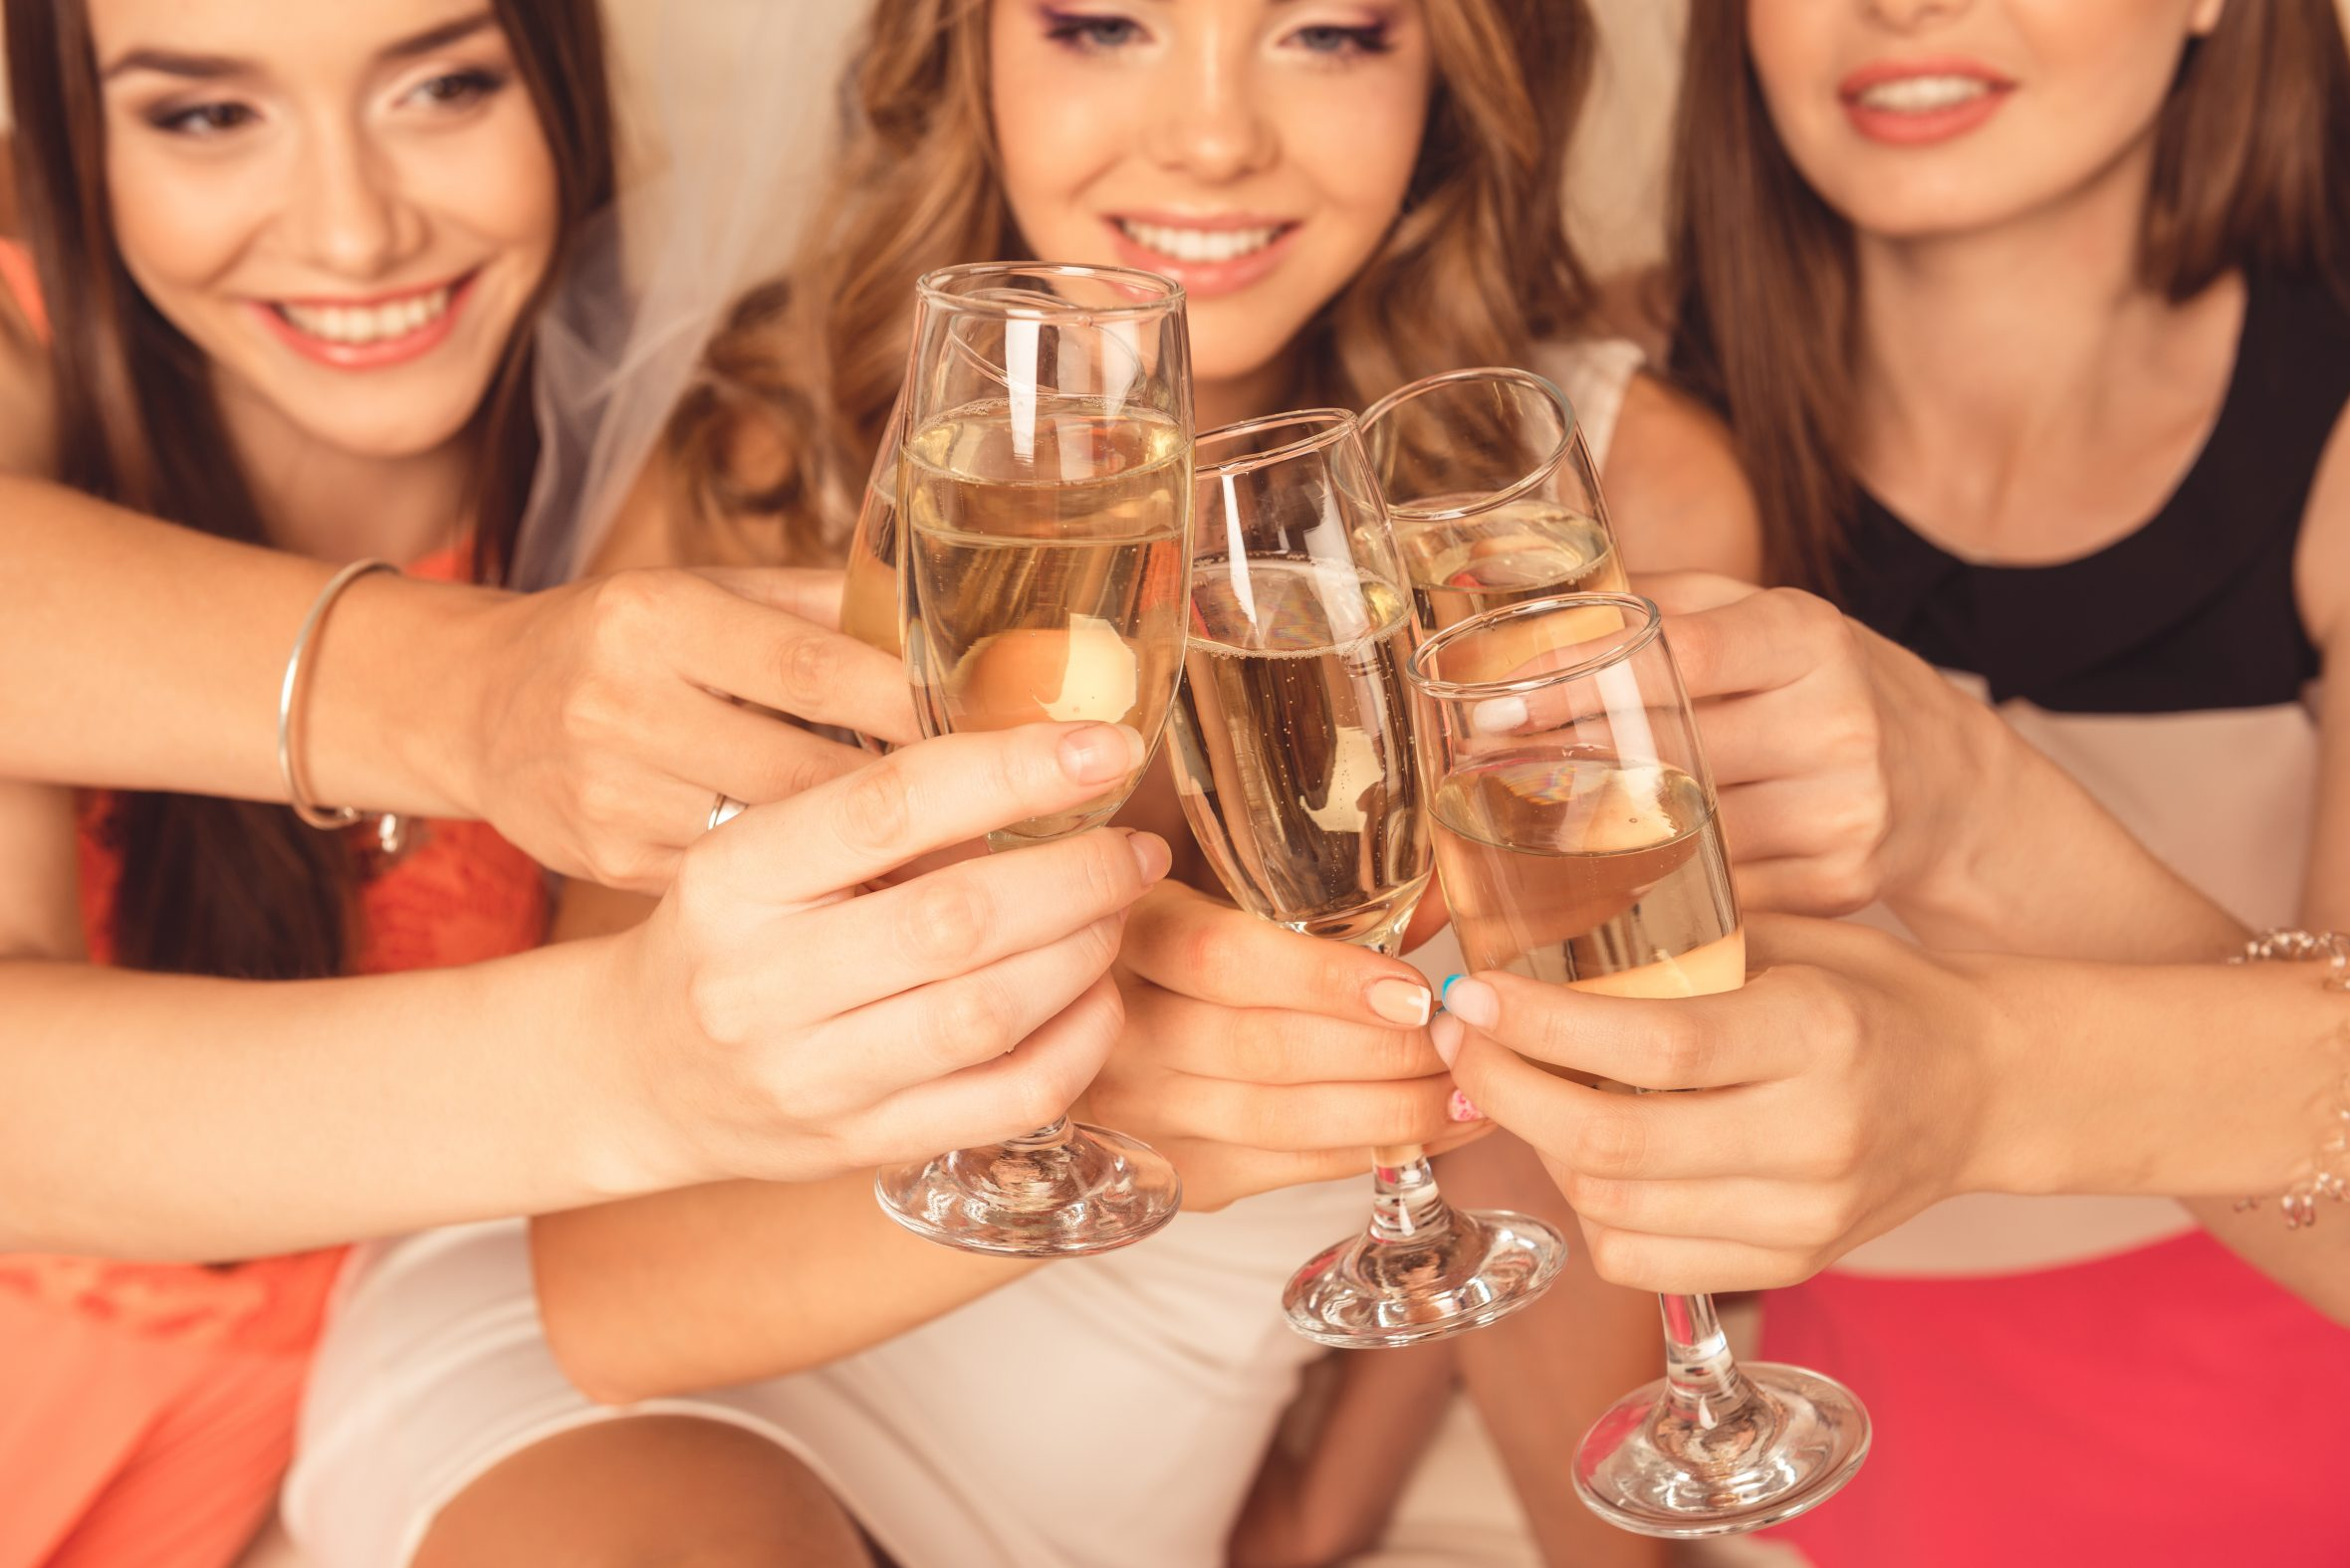 A bridal party clinking wine glasses together